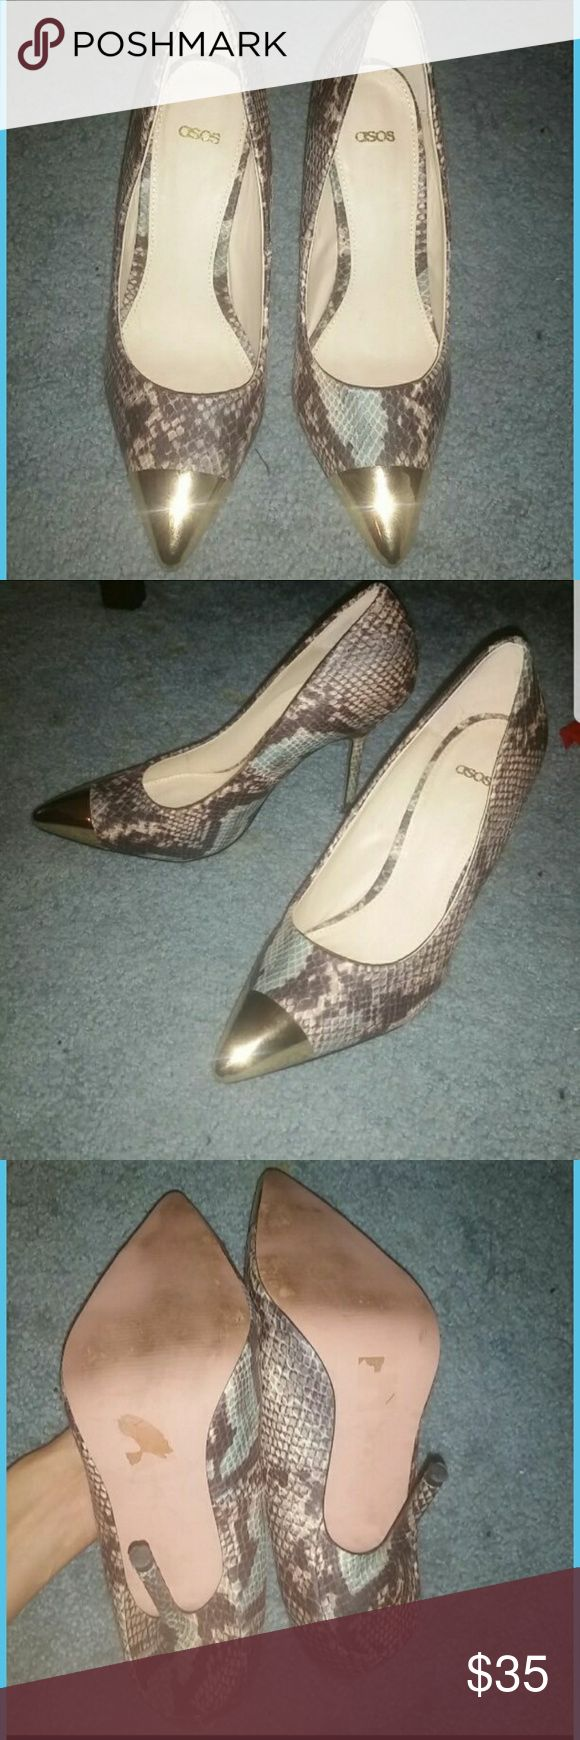 ASOS gold cap blue snake print pumps 8 Beautiful and rare find. Looks amazing with jeans. These are so comfortable! ASOS Shoes Heels